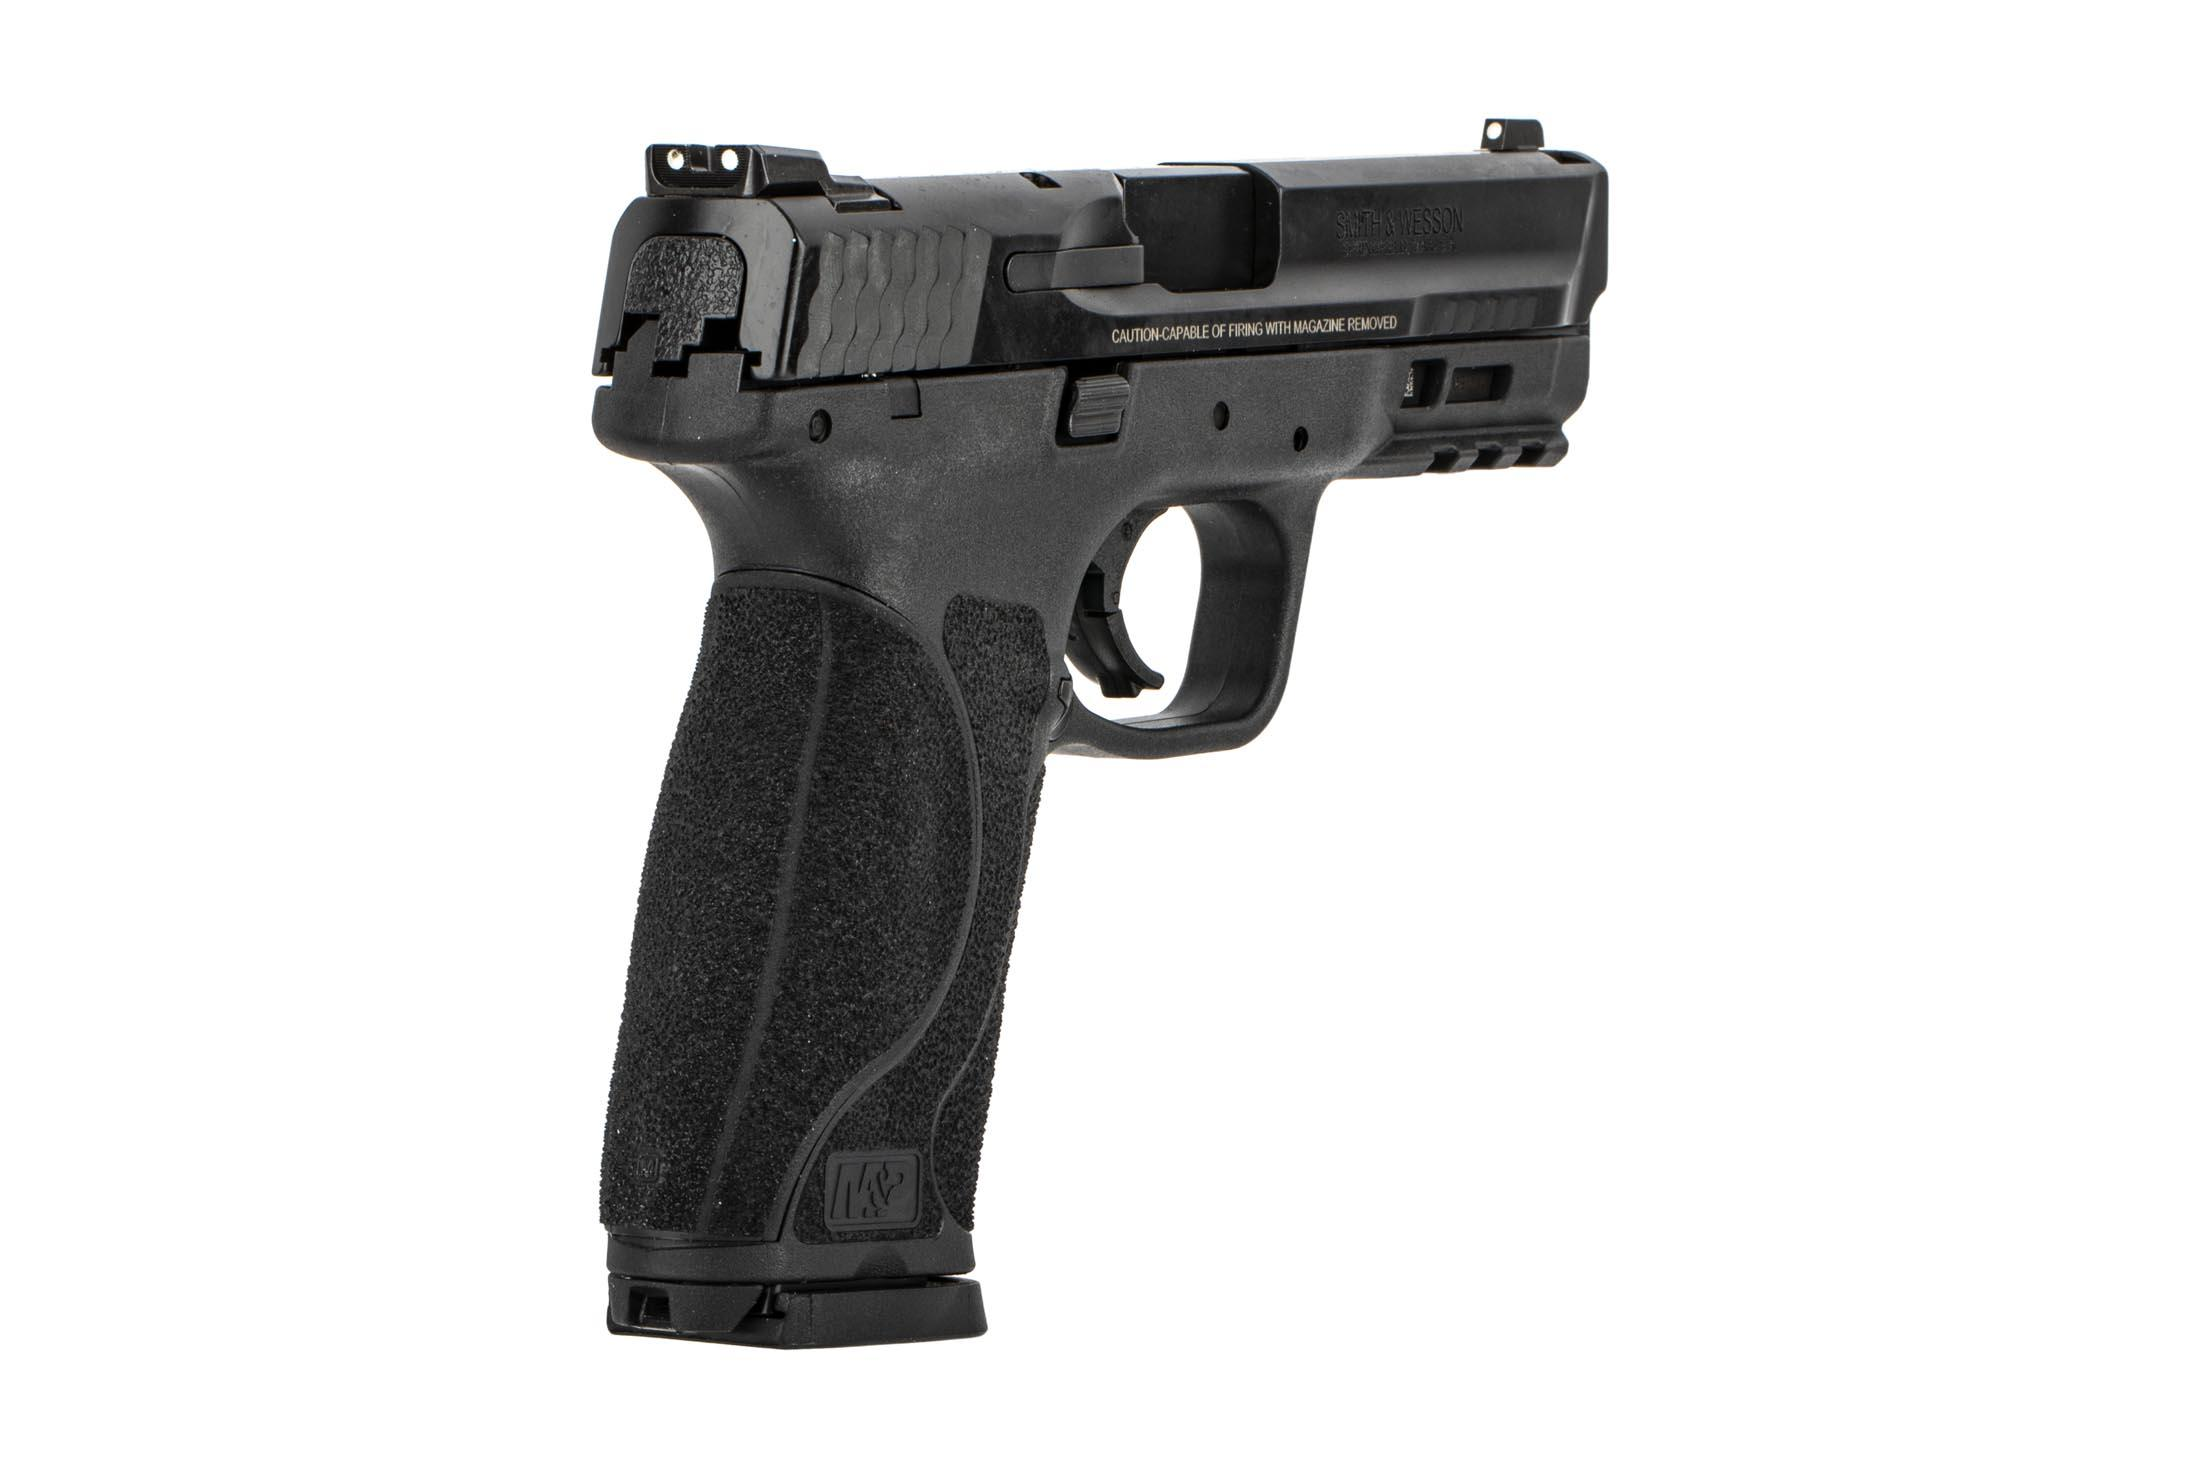 Smith & Wesson M&P9 2.0 9mm Full Size 17rnd Handgun - 4.25 Barrel - Black